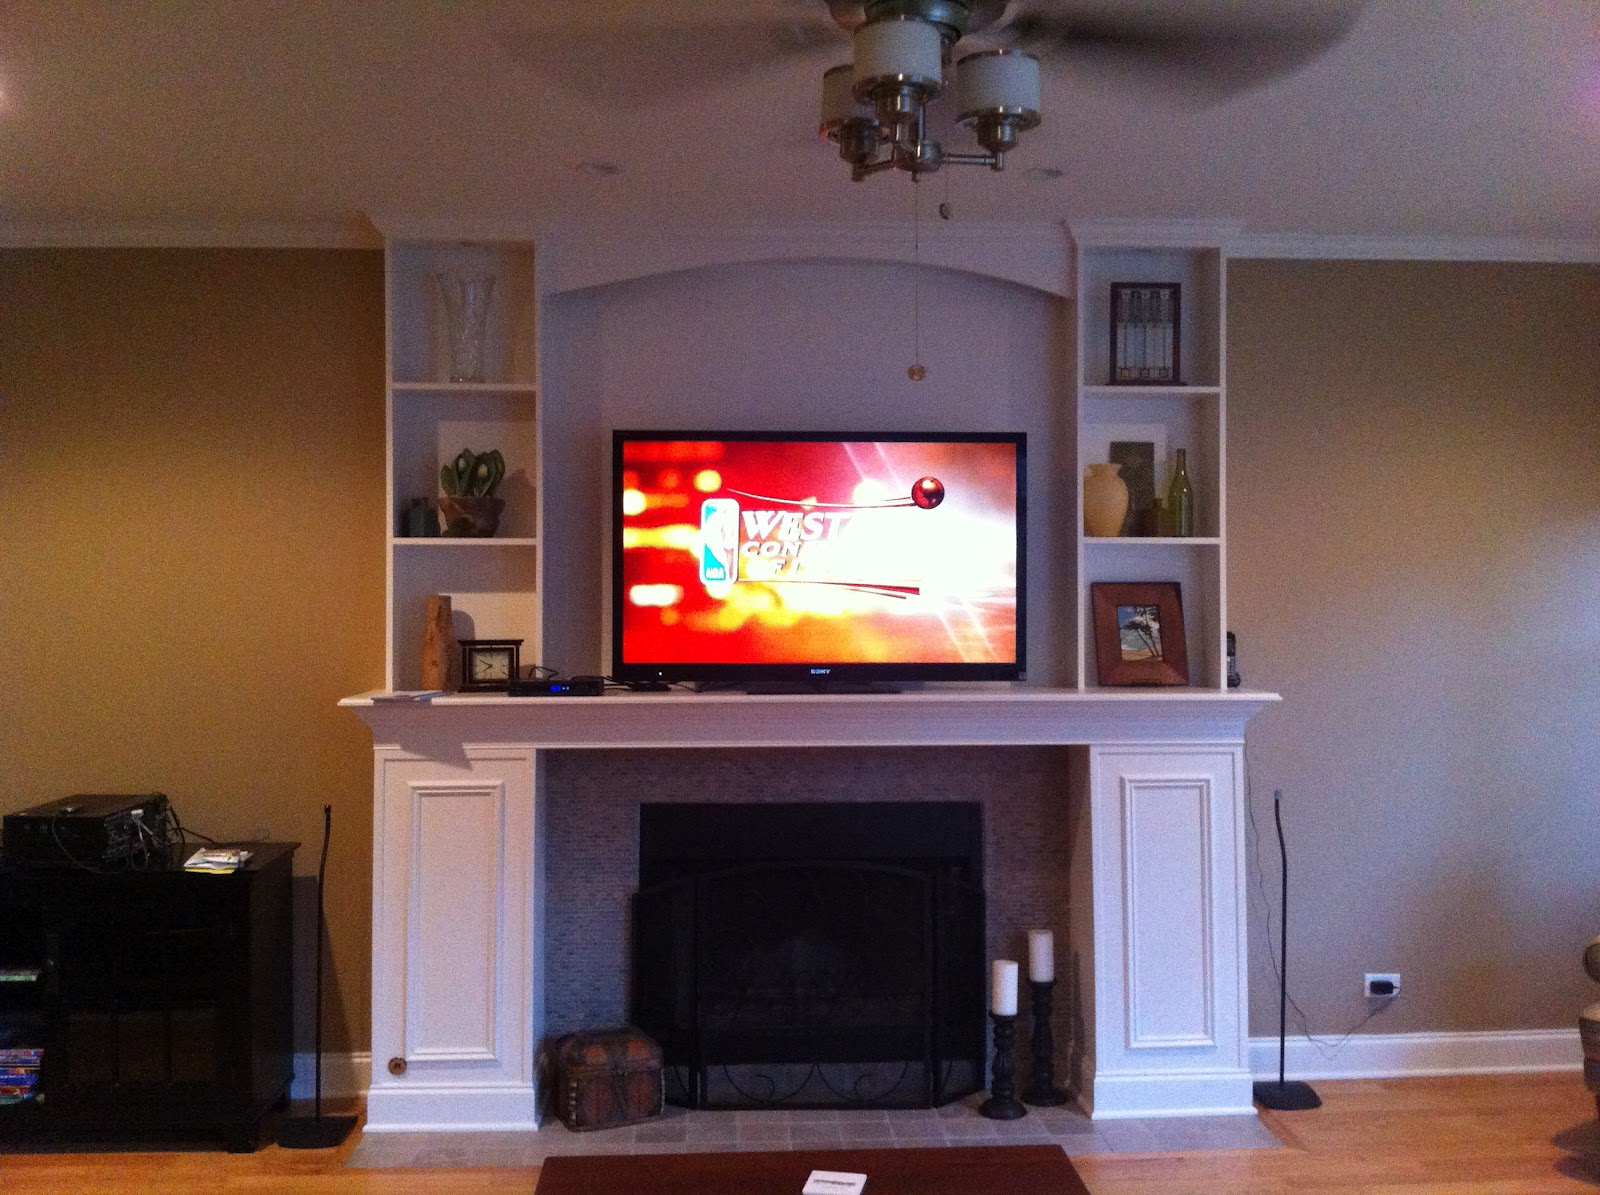 medium resolution of when we re done i ll have a 55 led tv mounted over the fireplace with high speed hdmi cabling running through the walls directly to the set for our